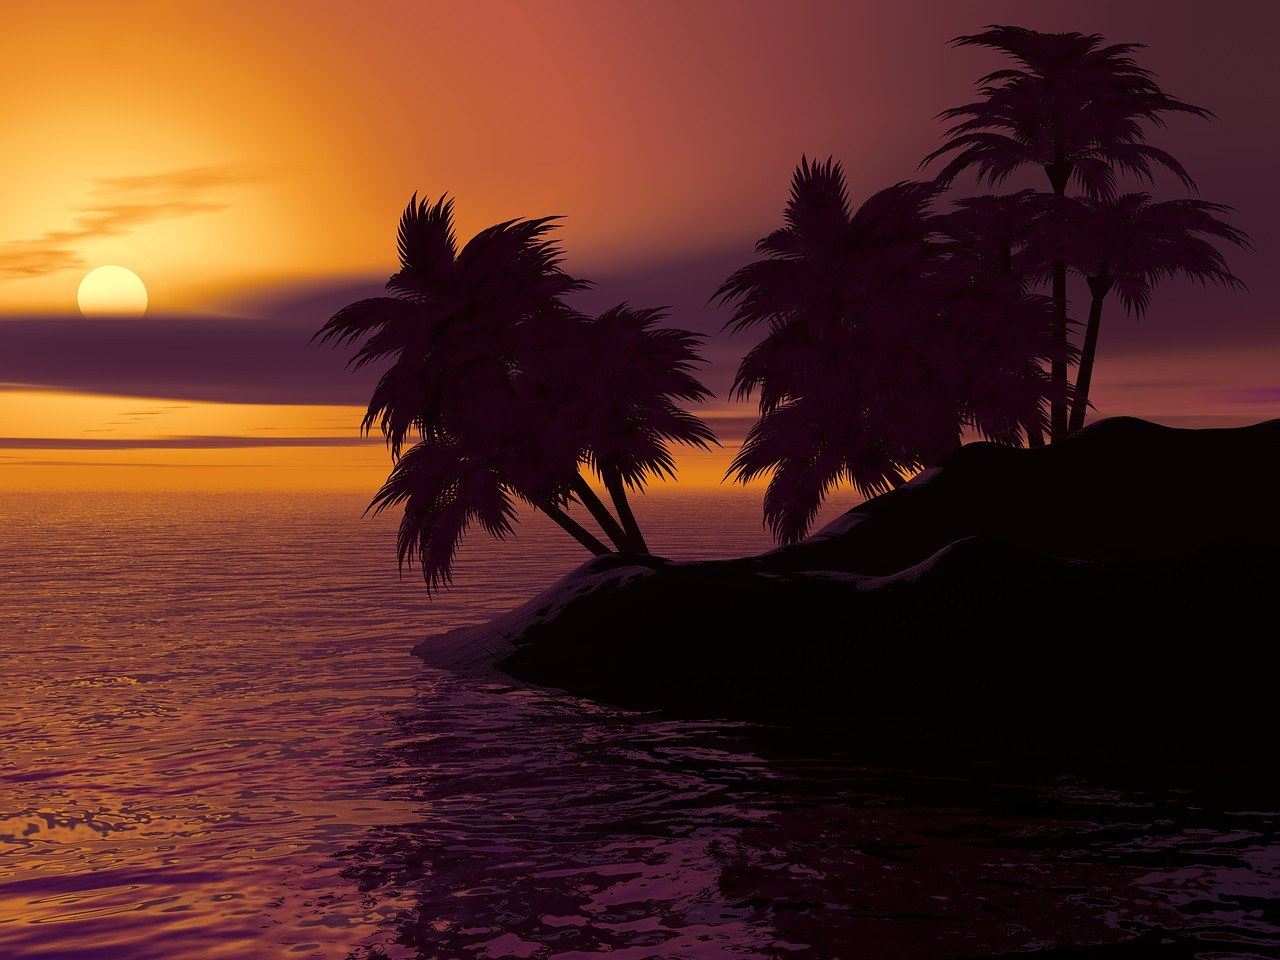 Sunset view in a Caribbean Island_PD